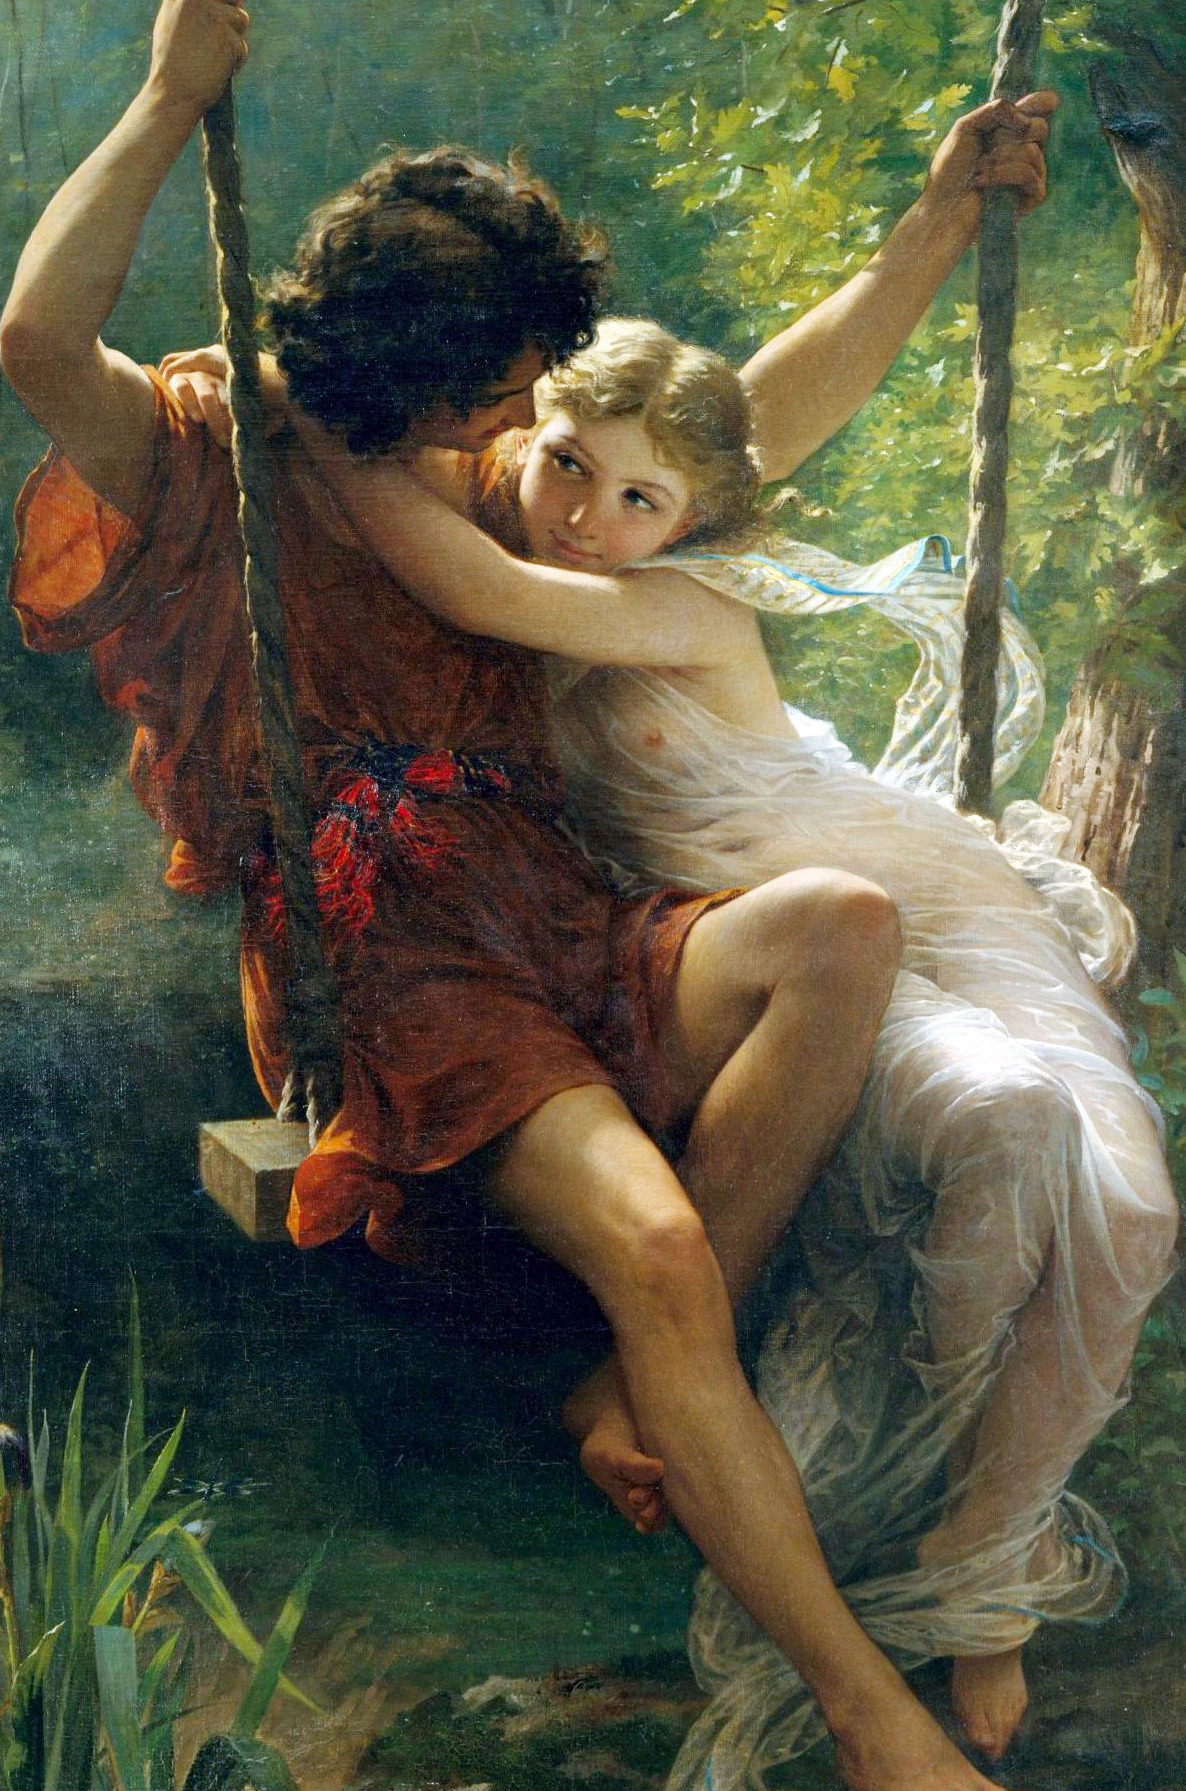 qinni:   Springtime (1873) by Pierre-August Cot  take time to appreciate the old masters' works.